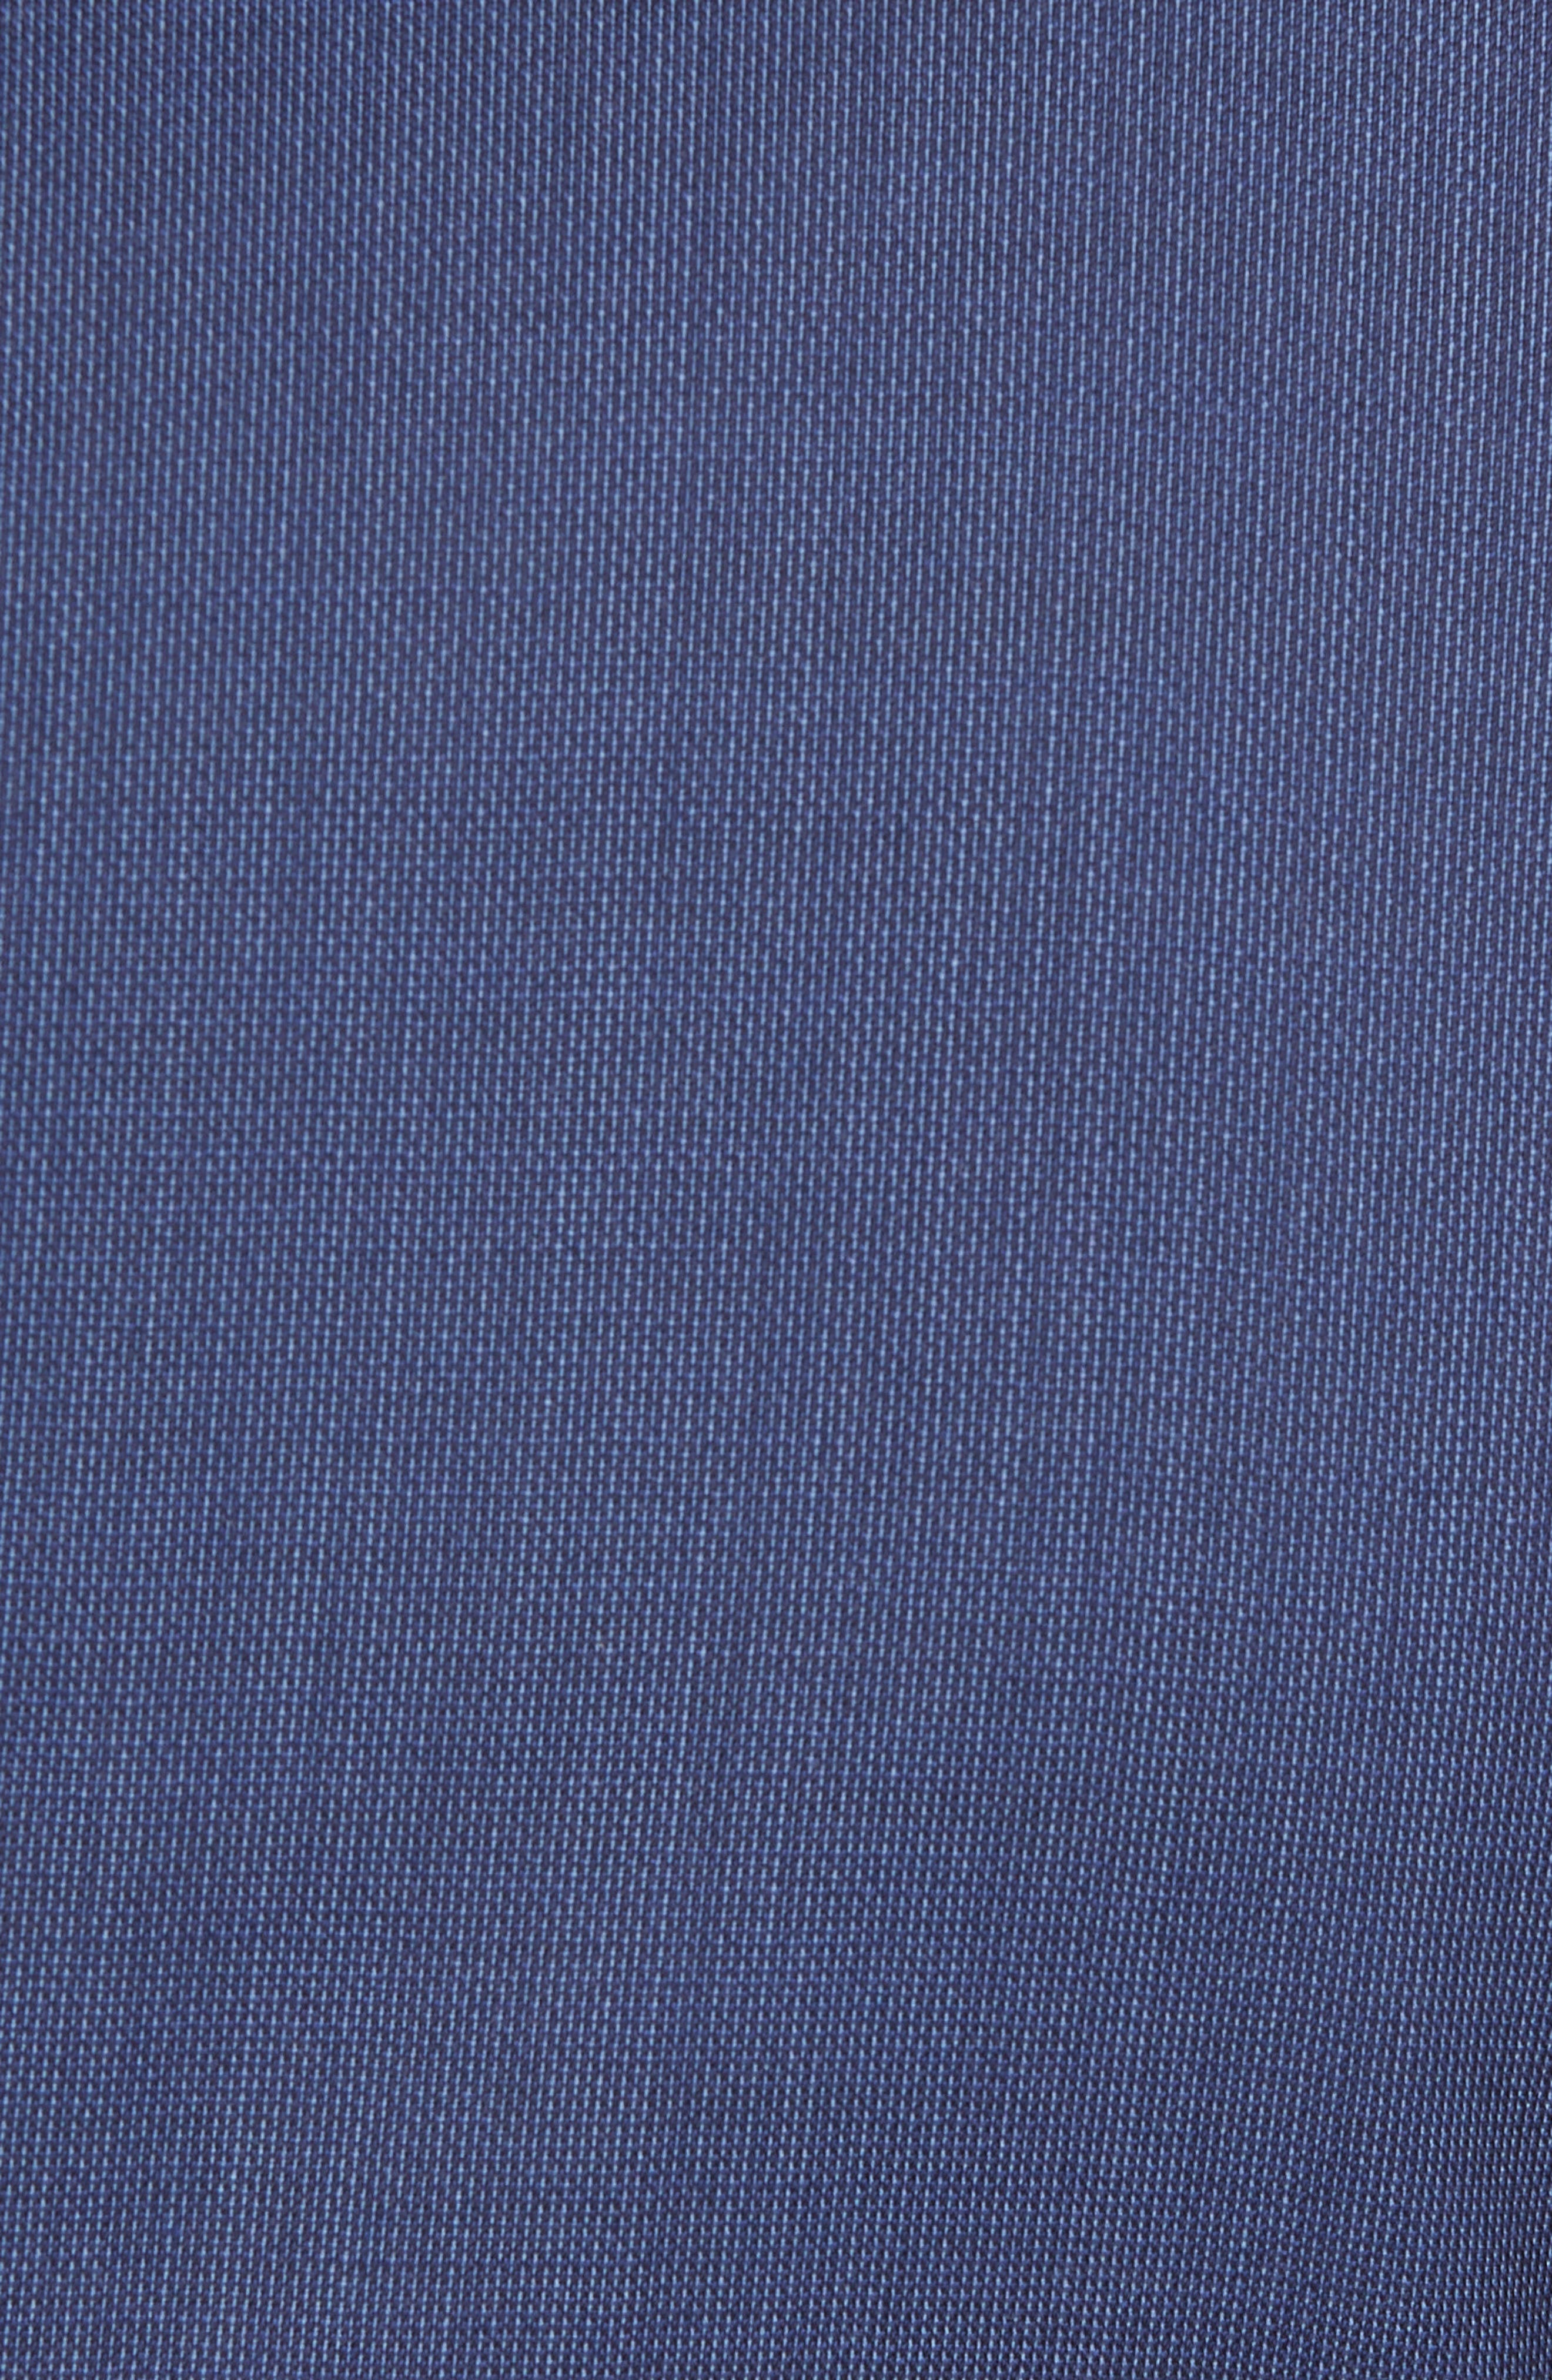 Reyno/Wave Extra Trim Fit Solid Wool Suit,                             Alternate thumbnail 7, color,                             Medium Blue